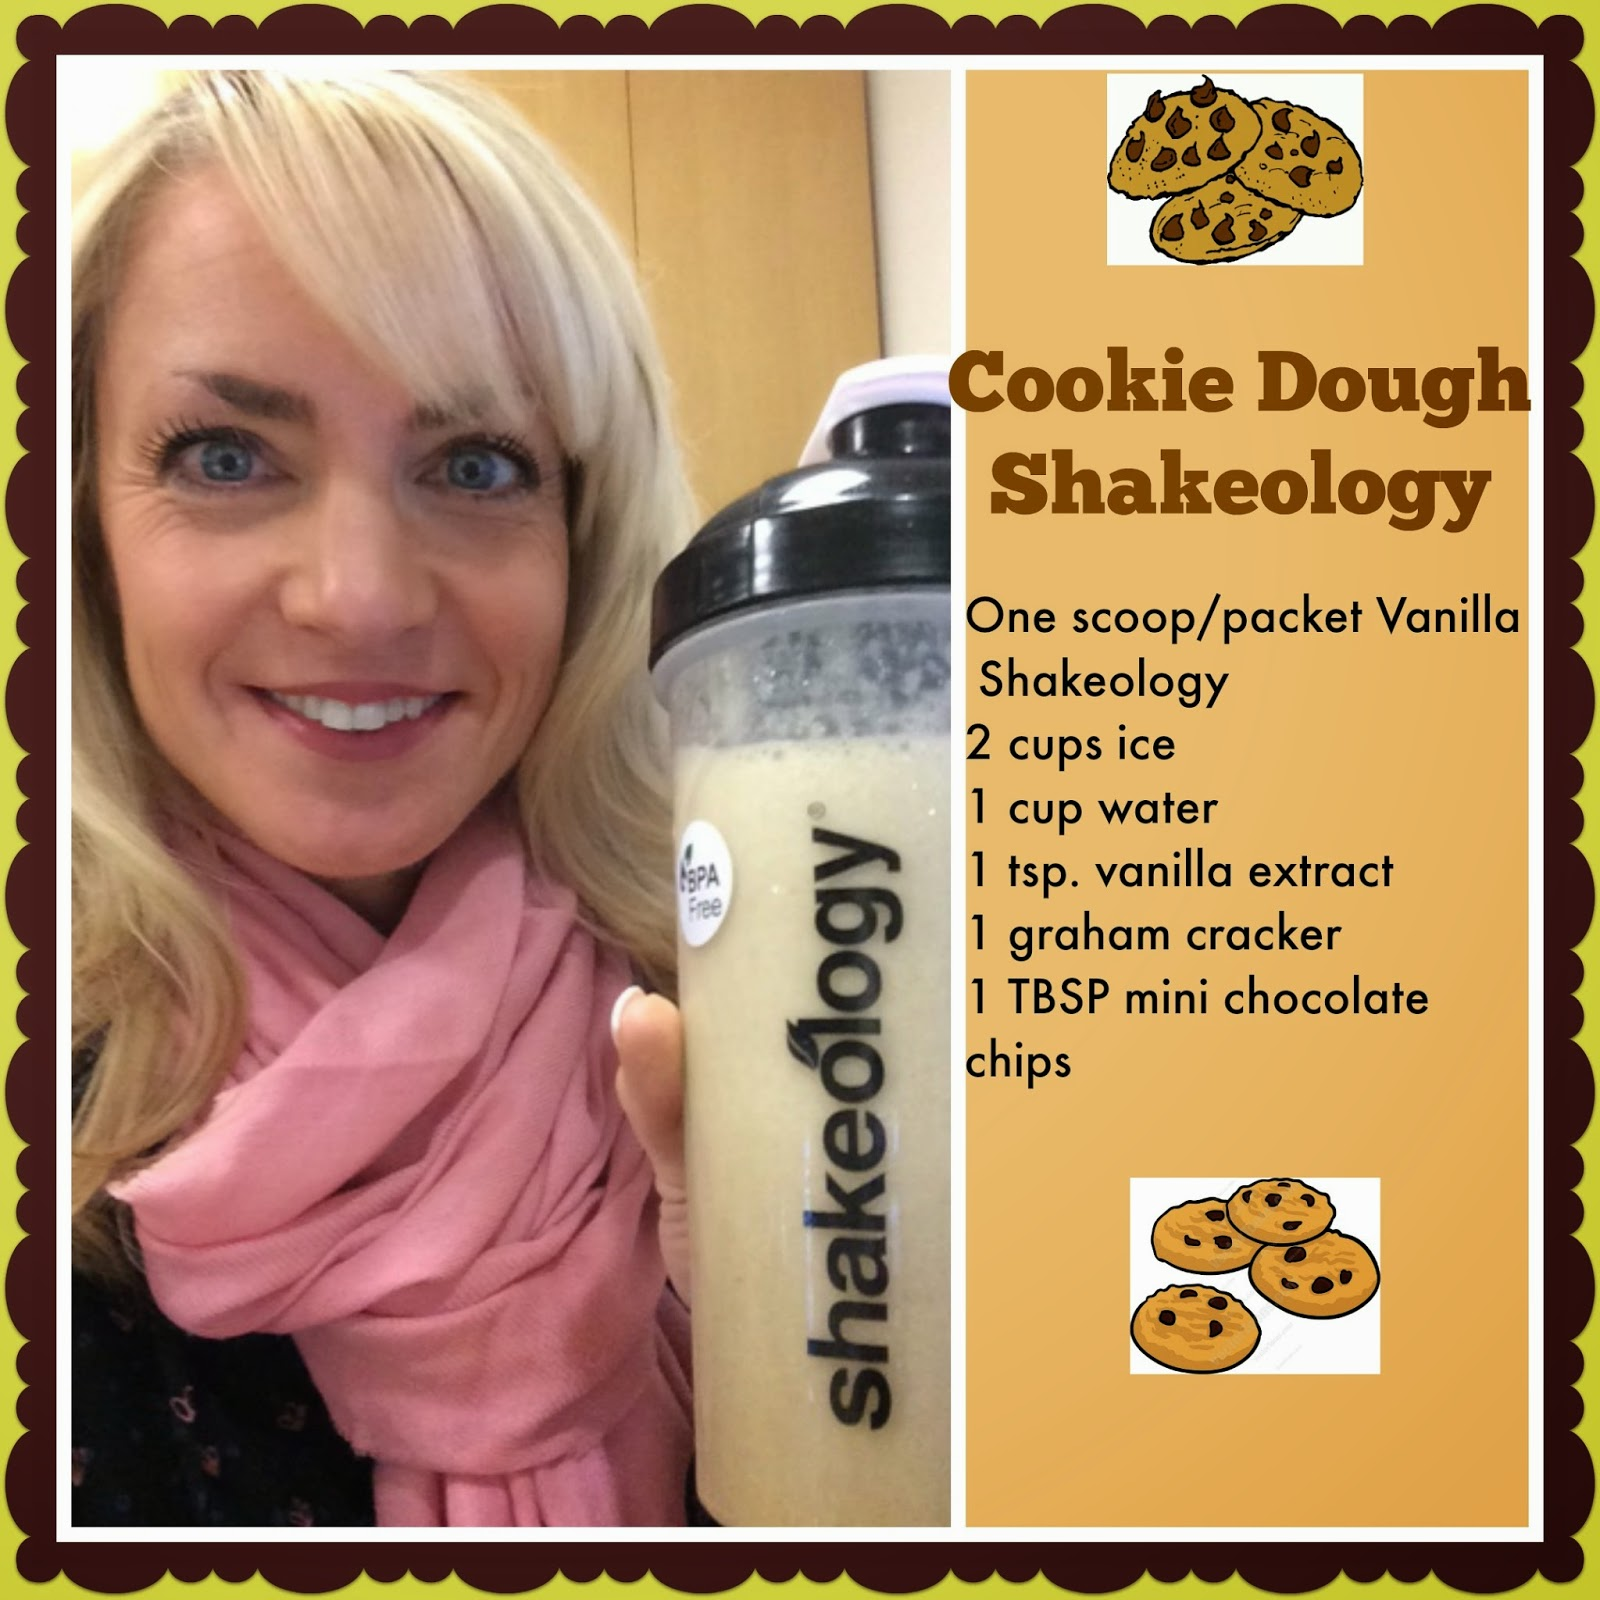 Chocolate chip cookie dough shakeology, Vanessa McLaughlin, The Butterfly Effect